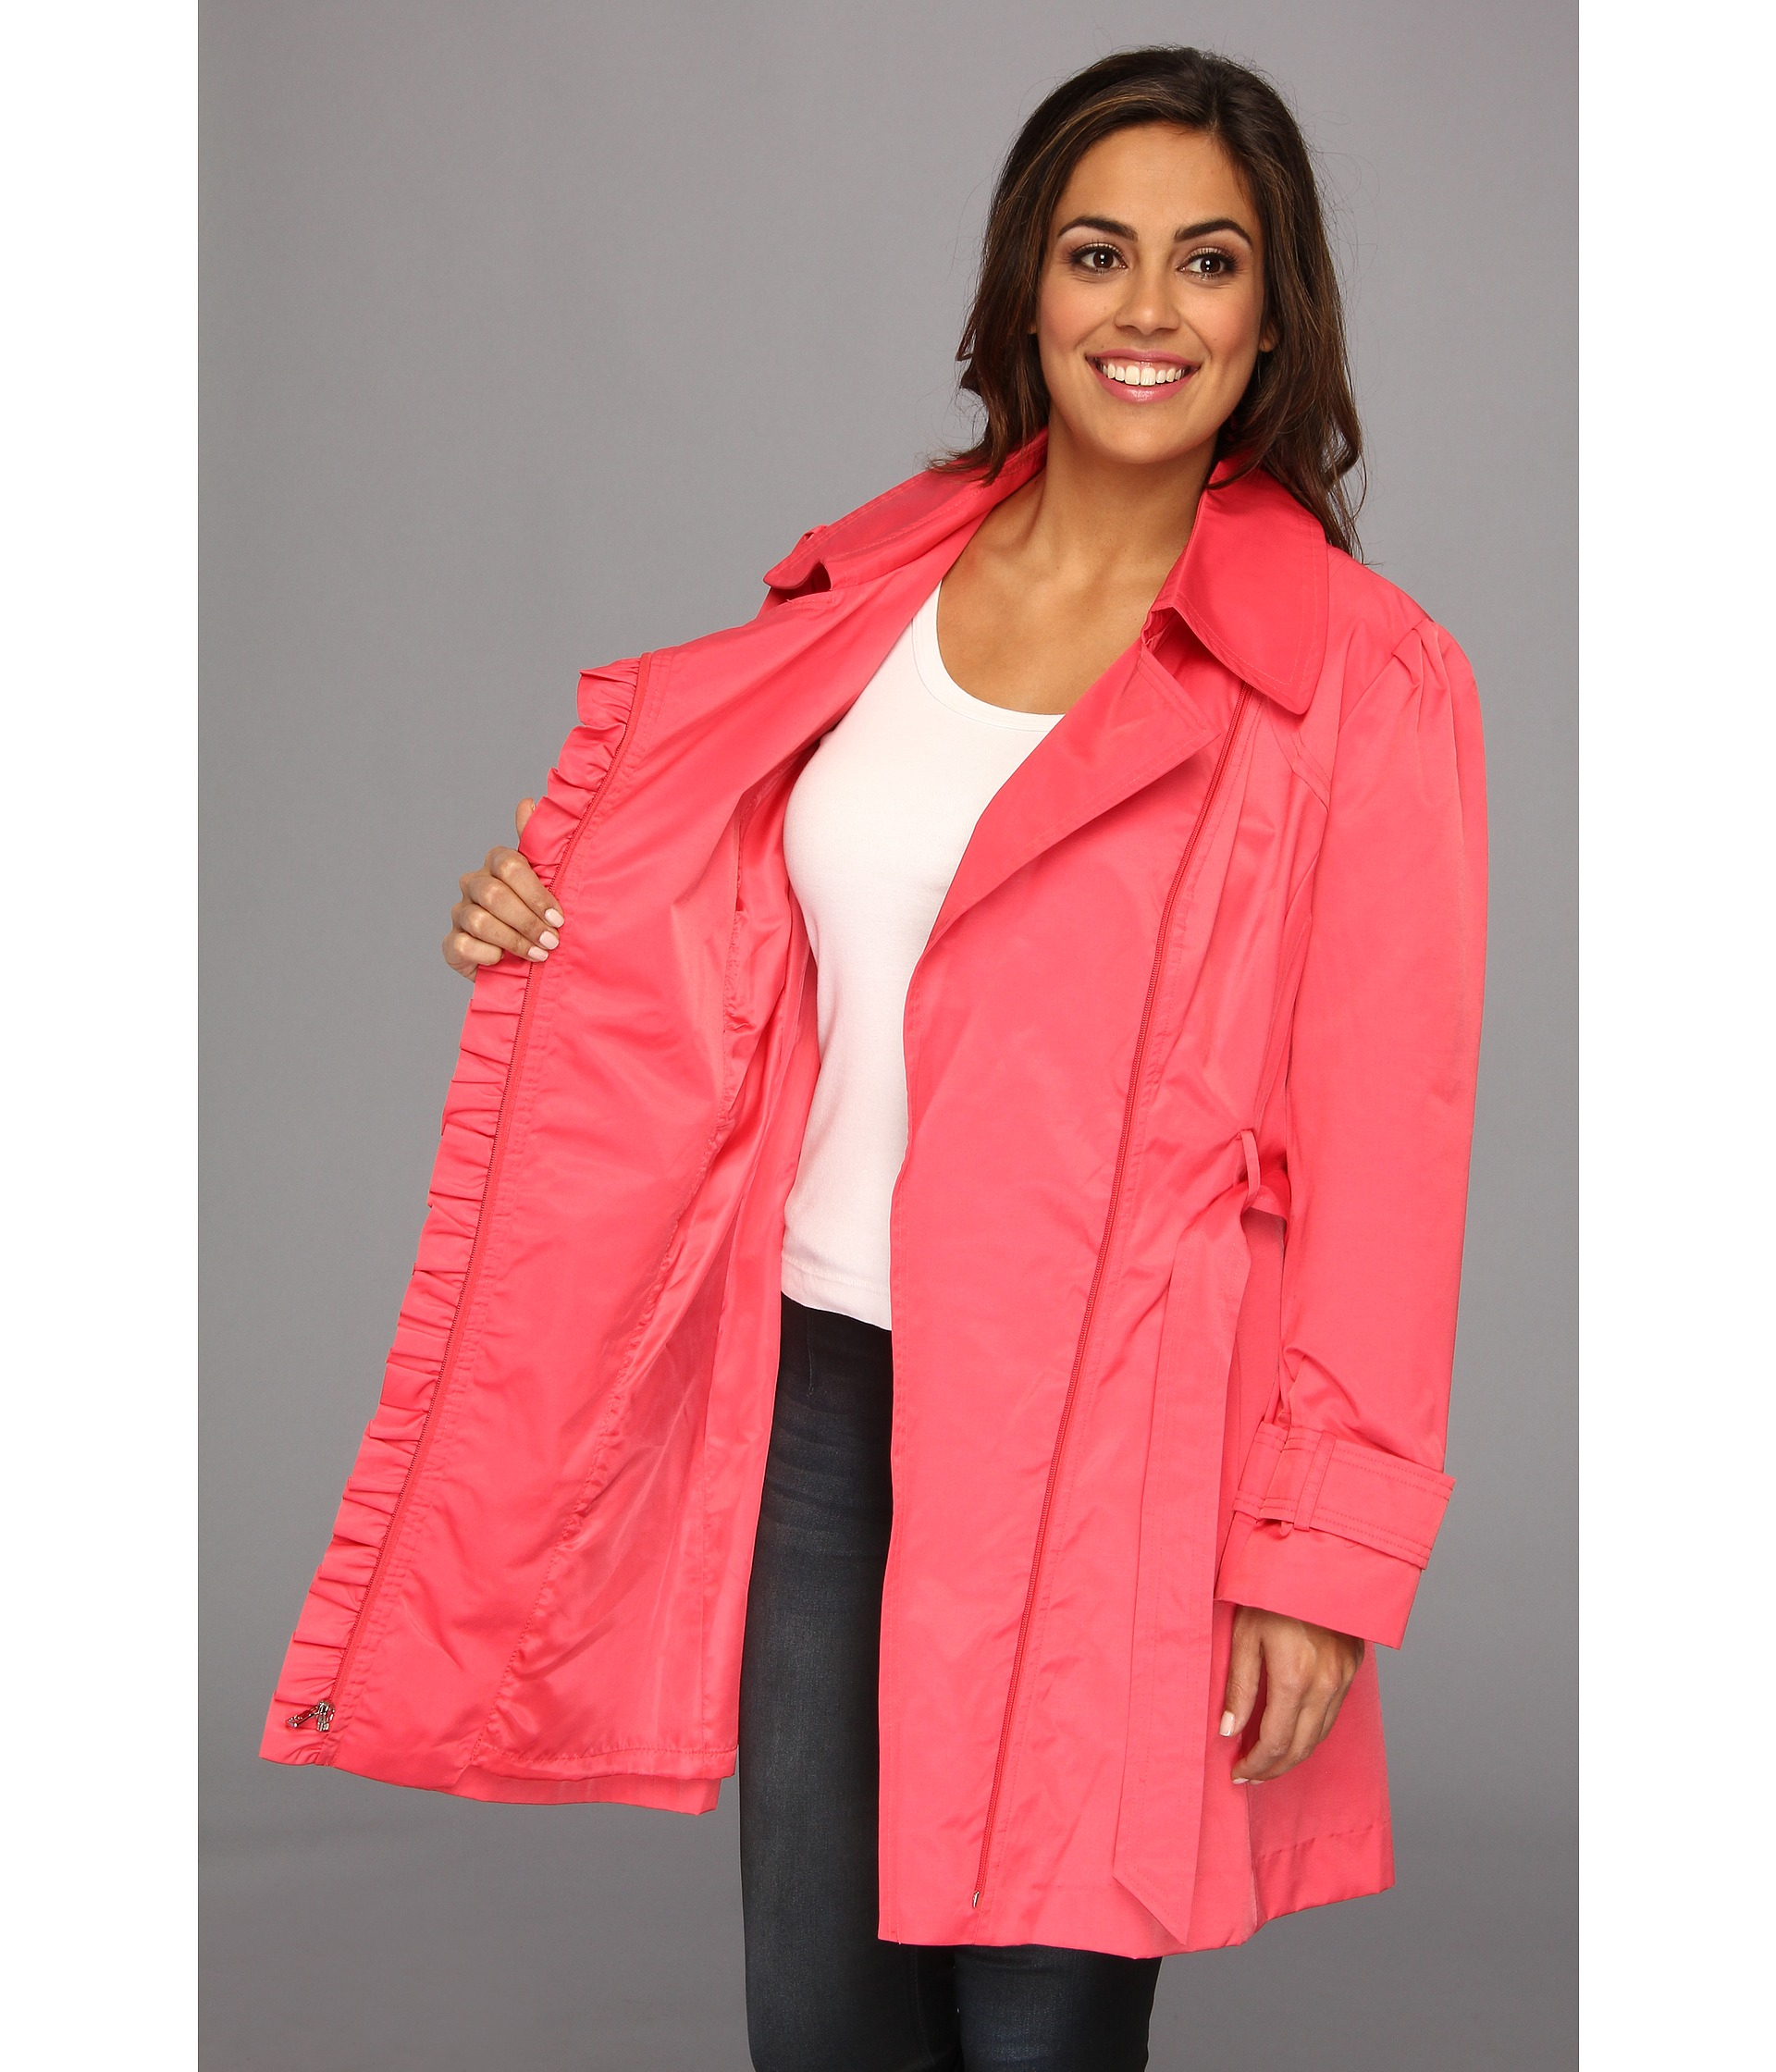 56124987f07 Lyst - Jessica Simpson Plus Size Ruffle Trim Belted Trench Coat in ...